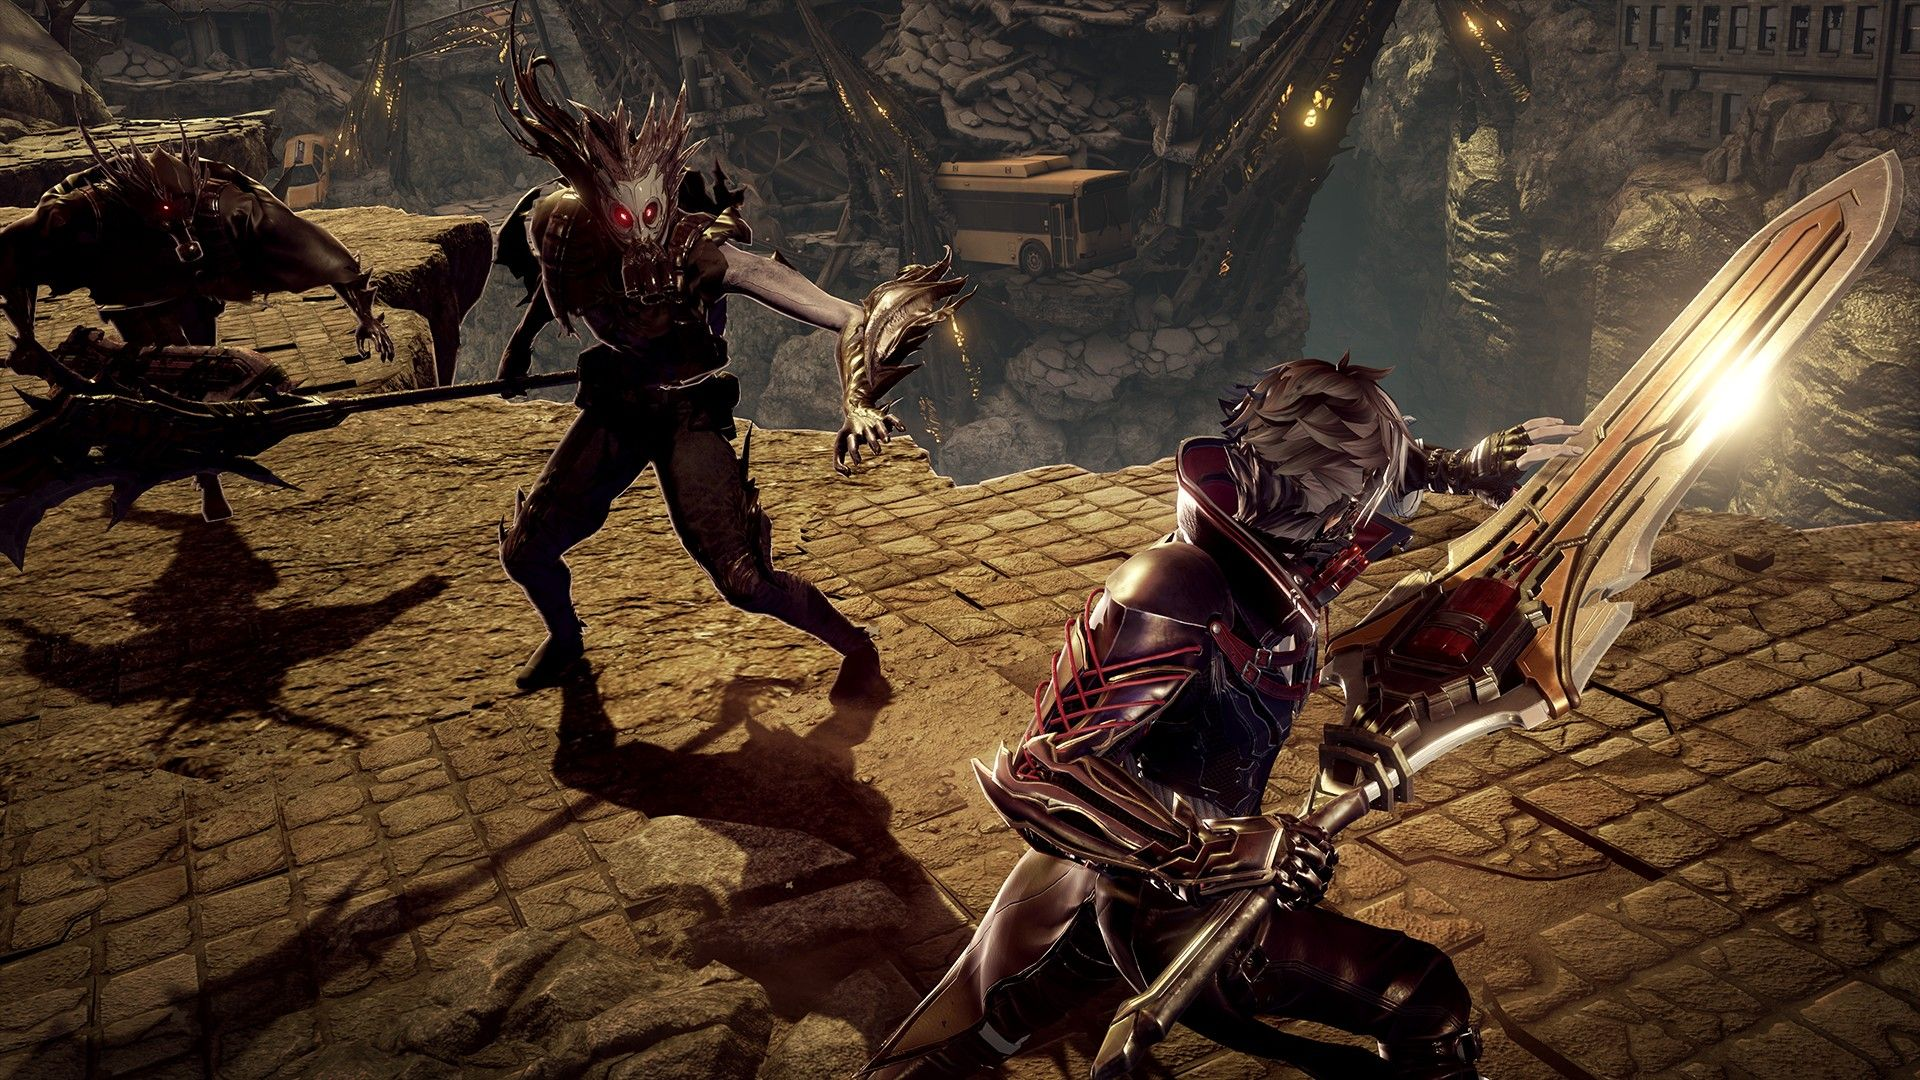 Pin By Games On Code Vein Ps4 Video Dark Souls Ps4